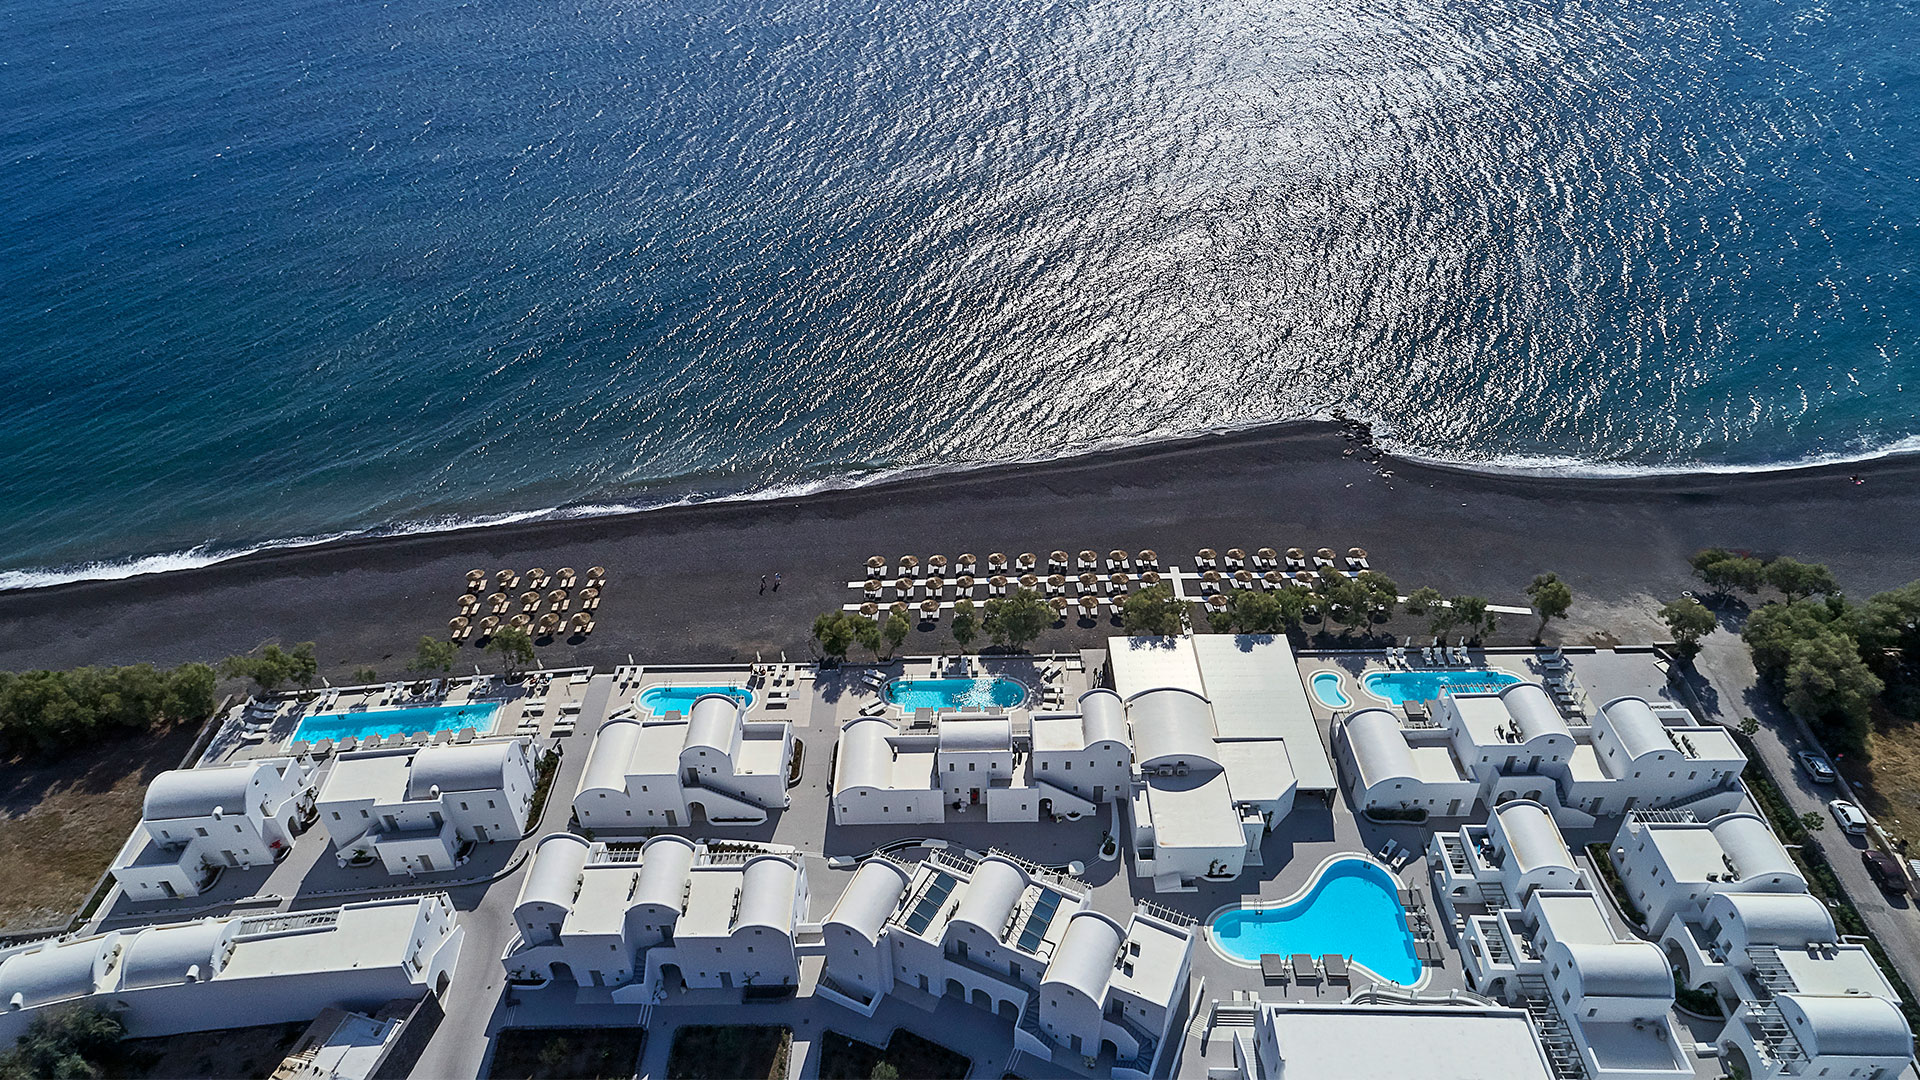 Costa Grand Resort & Spa, 5-star Hotel, Kamari Beach, Santorini